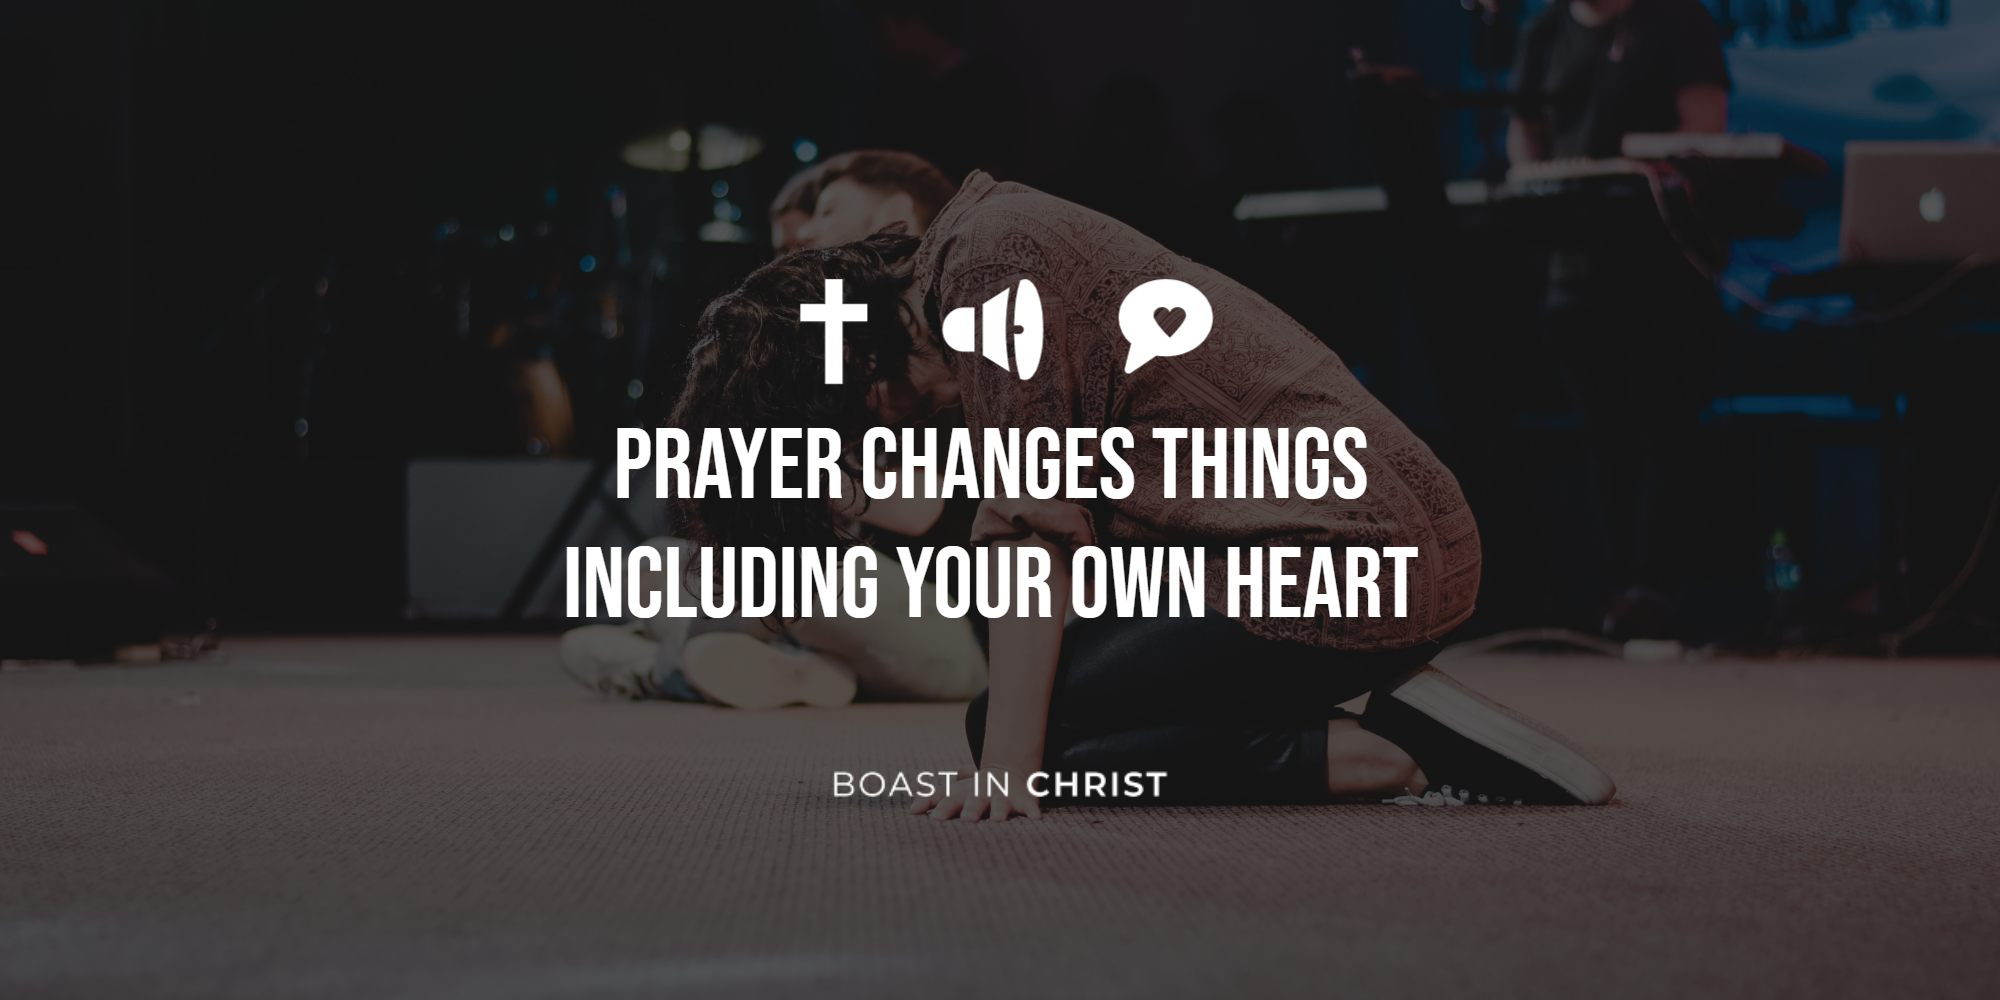 Prayer Changes Things Including Your Own Heart